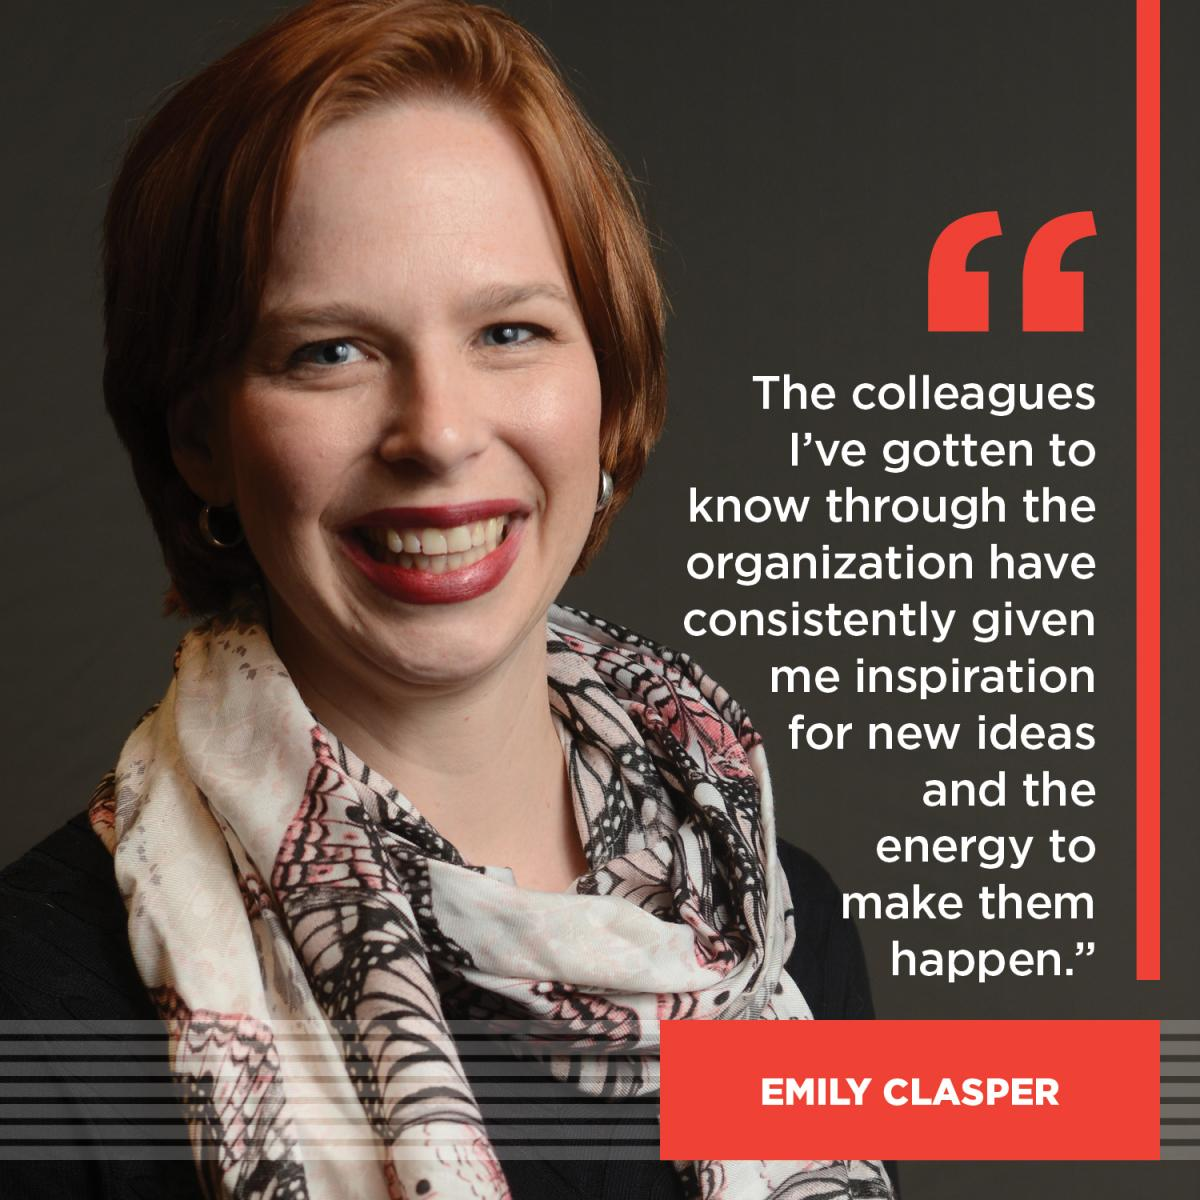 The colleagues I've gotten to know through the organization have consistently given me inspiration for new ideas and the energy to make them happen. - Emily Clasper